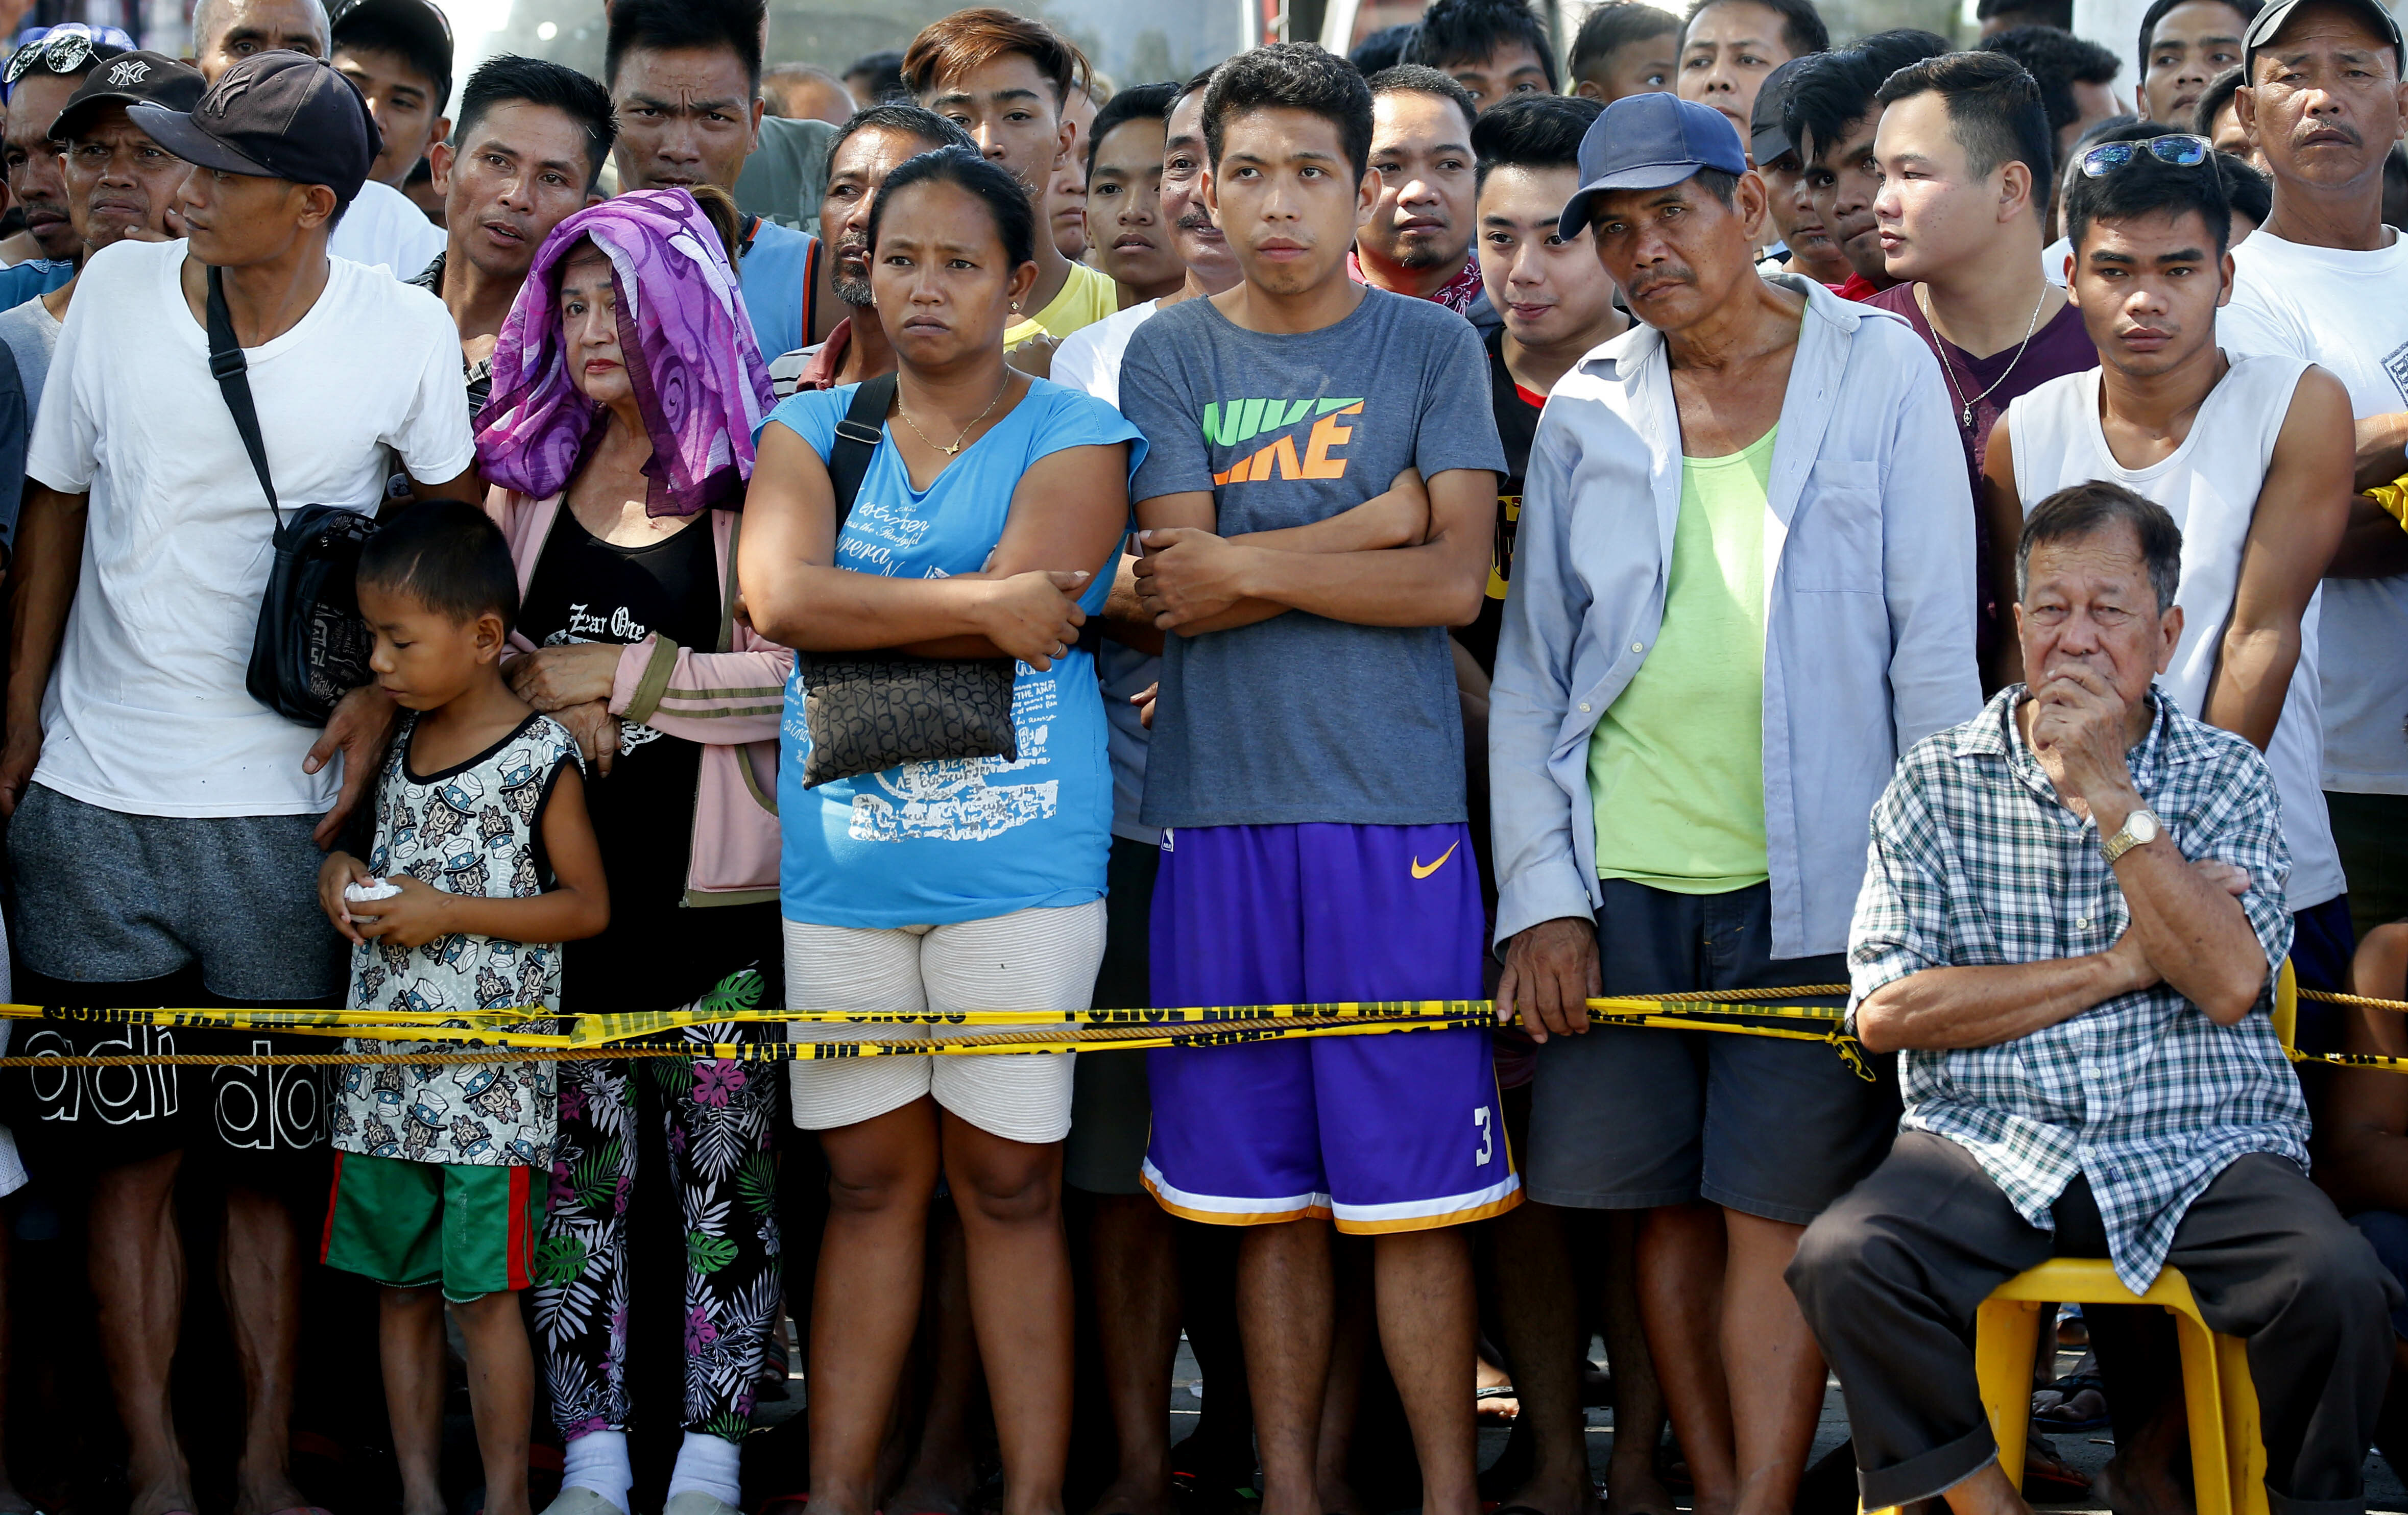 The Latest: New 6.3 magnitude earthquake hits Philippines